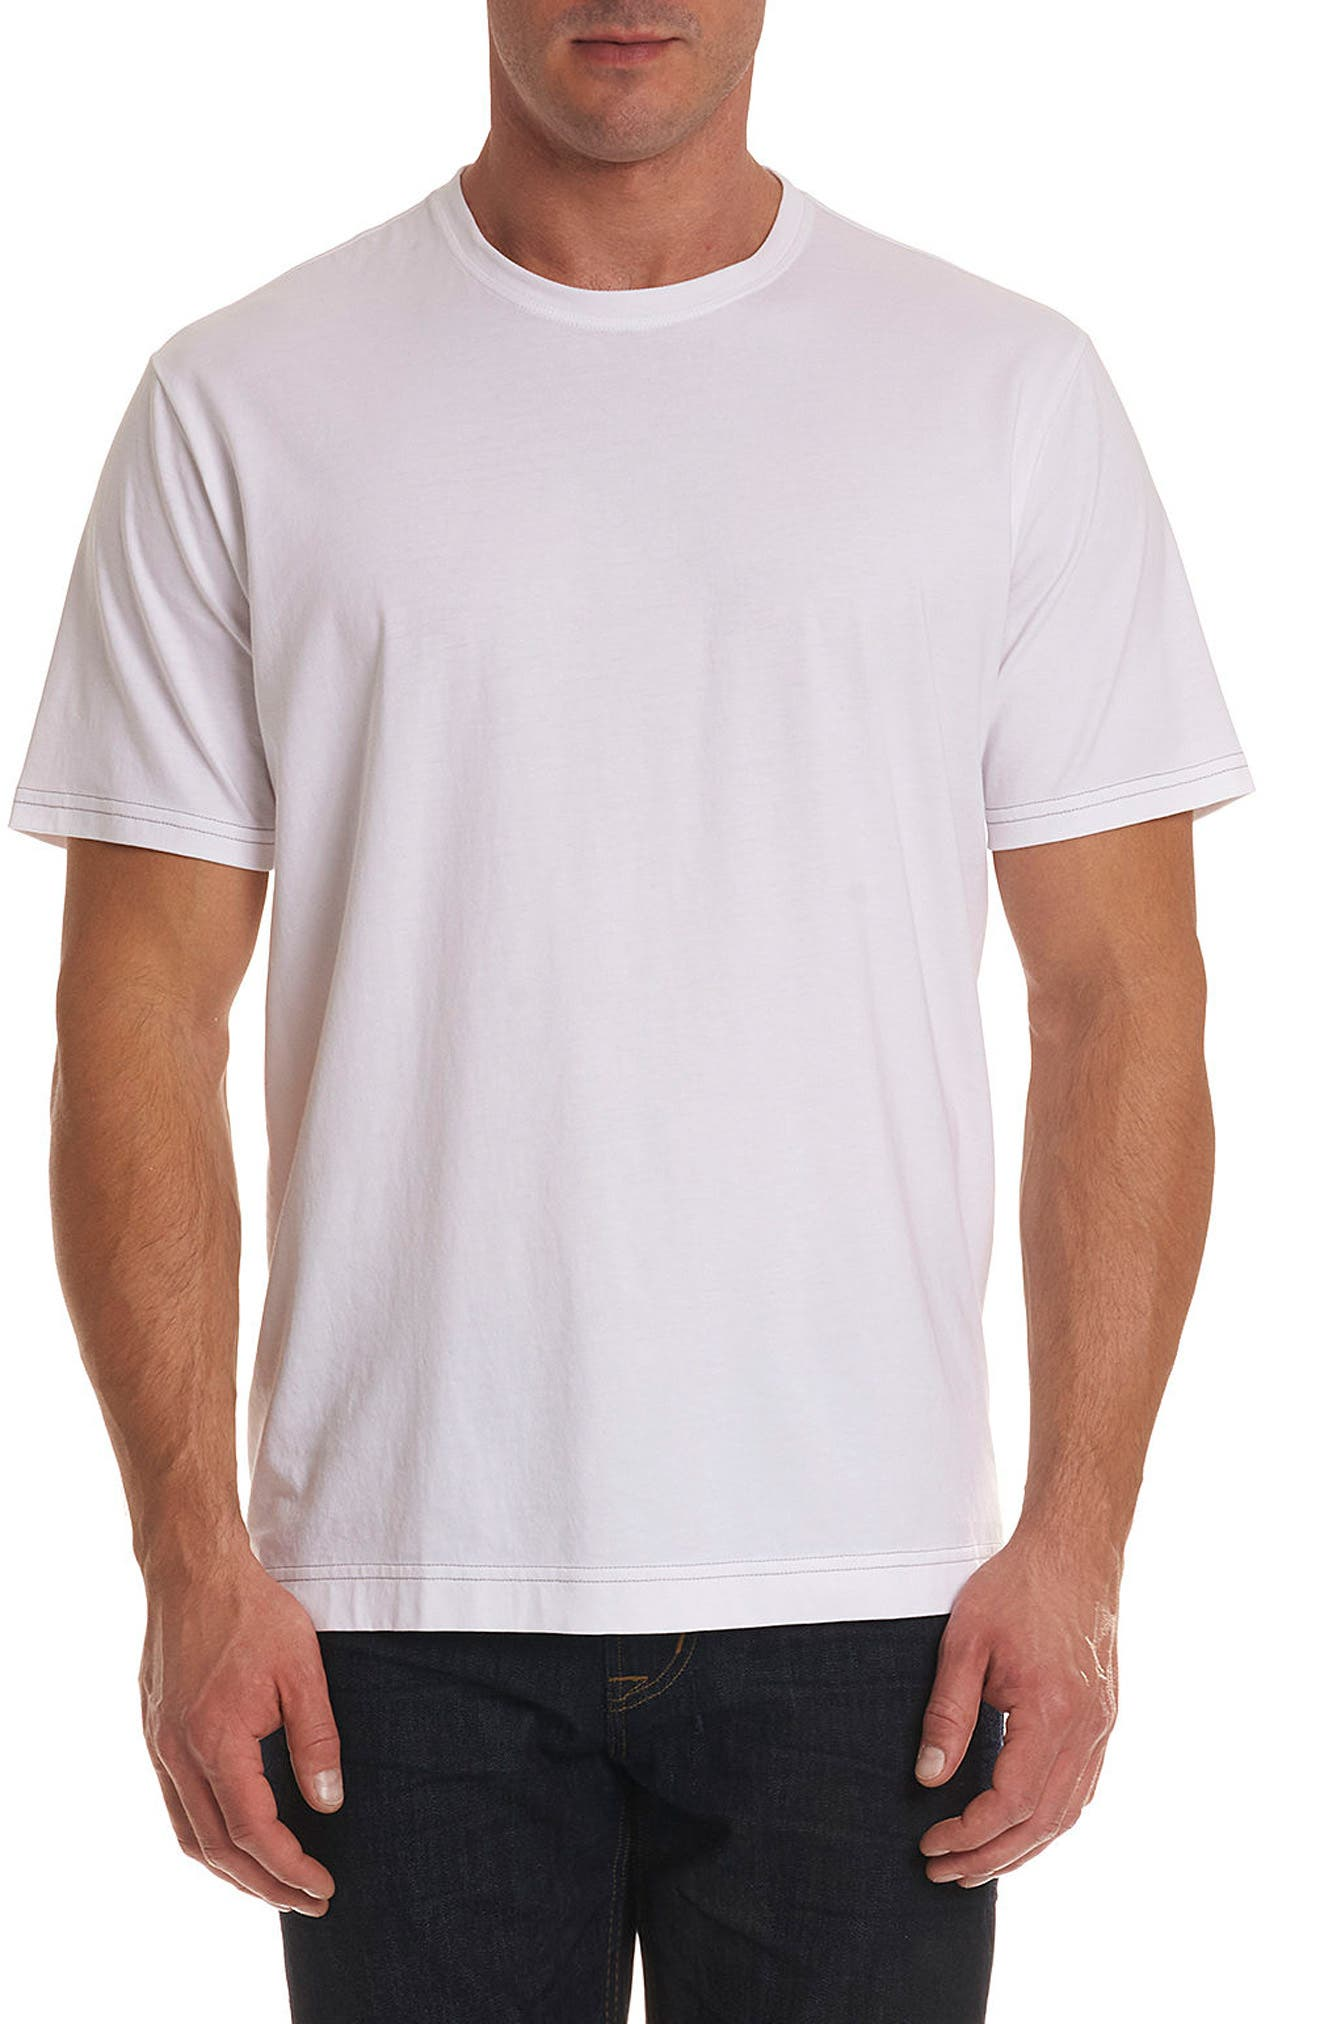 Neo T-Shirt,                             Main thumbnail 1, color,                             White